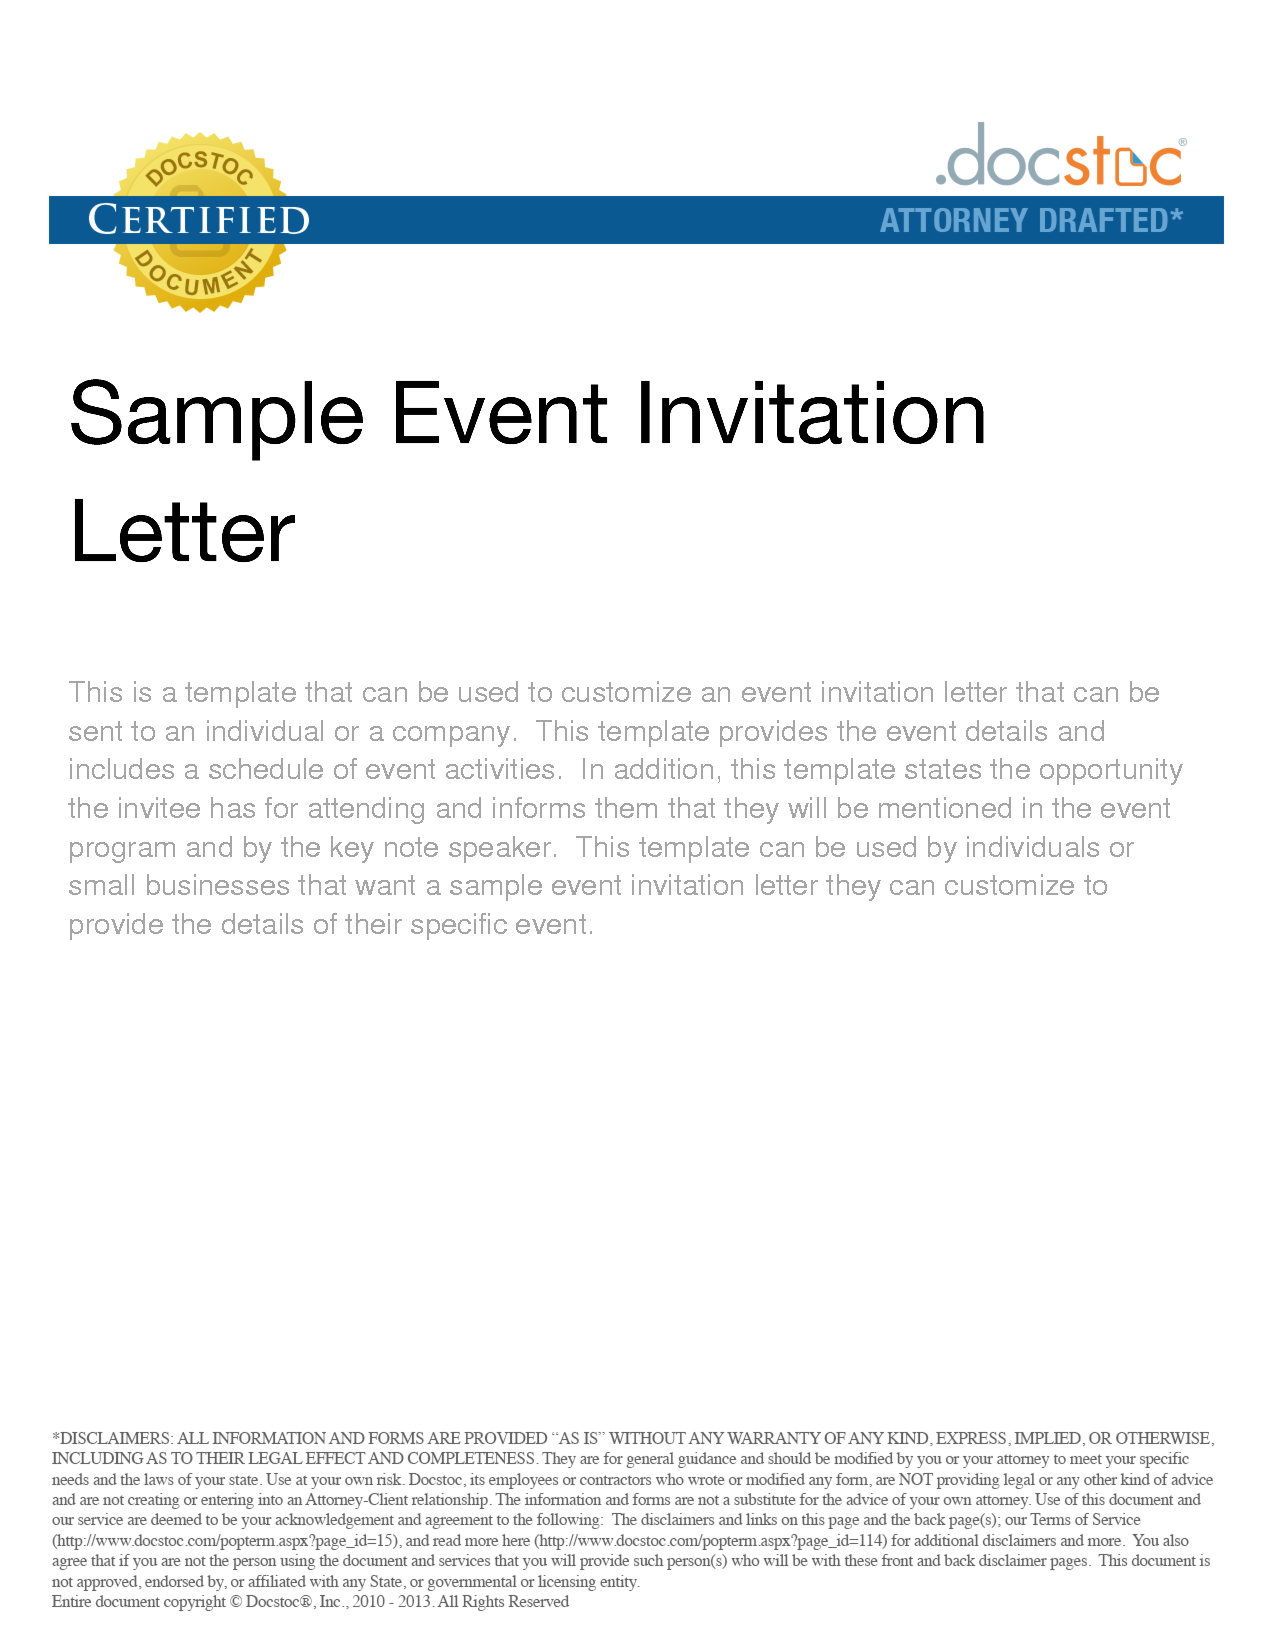 Corporate event invitation text sample of corporate invitation to event 1275 x 1650 stopboris Choice Image